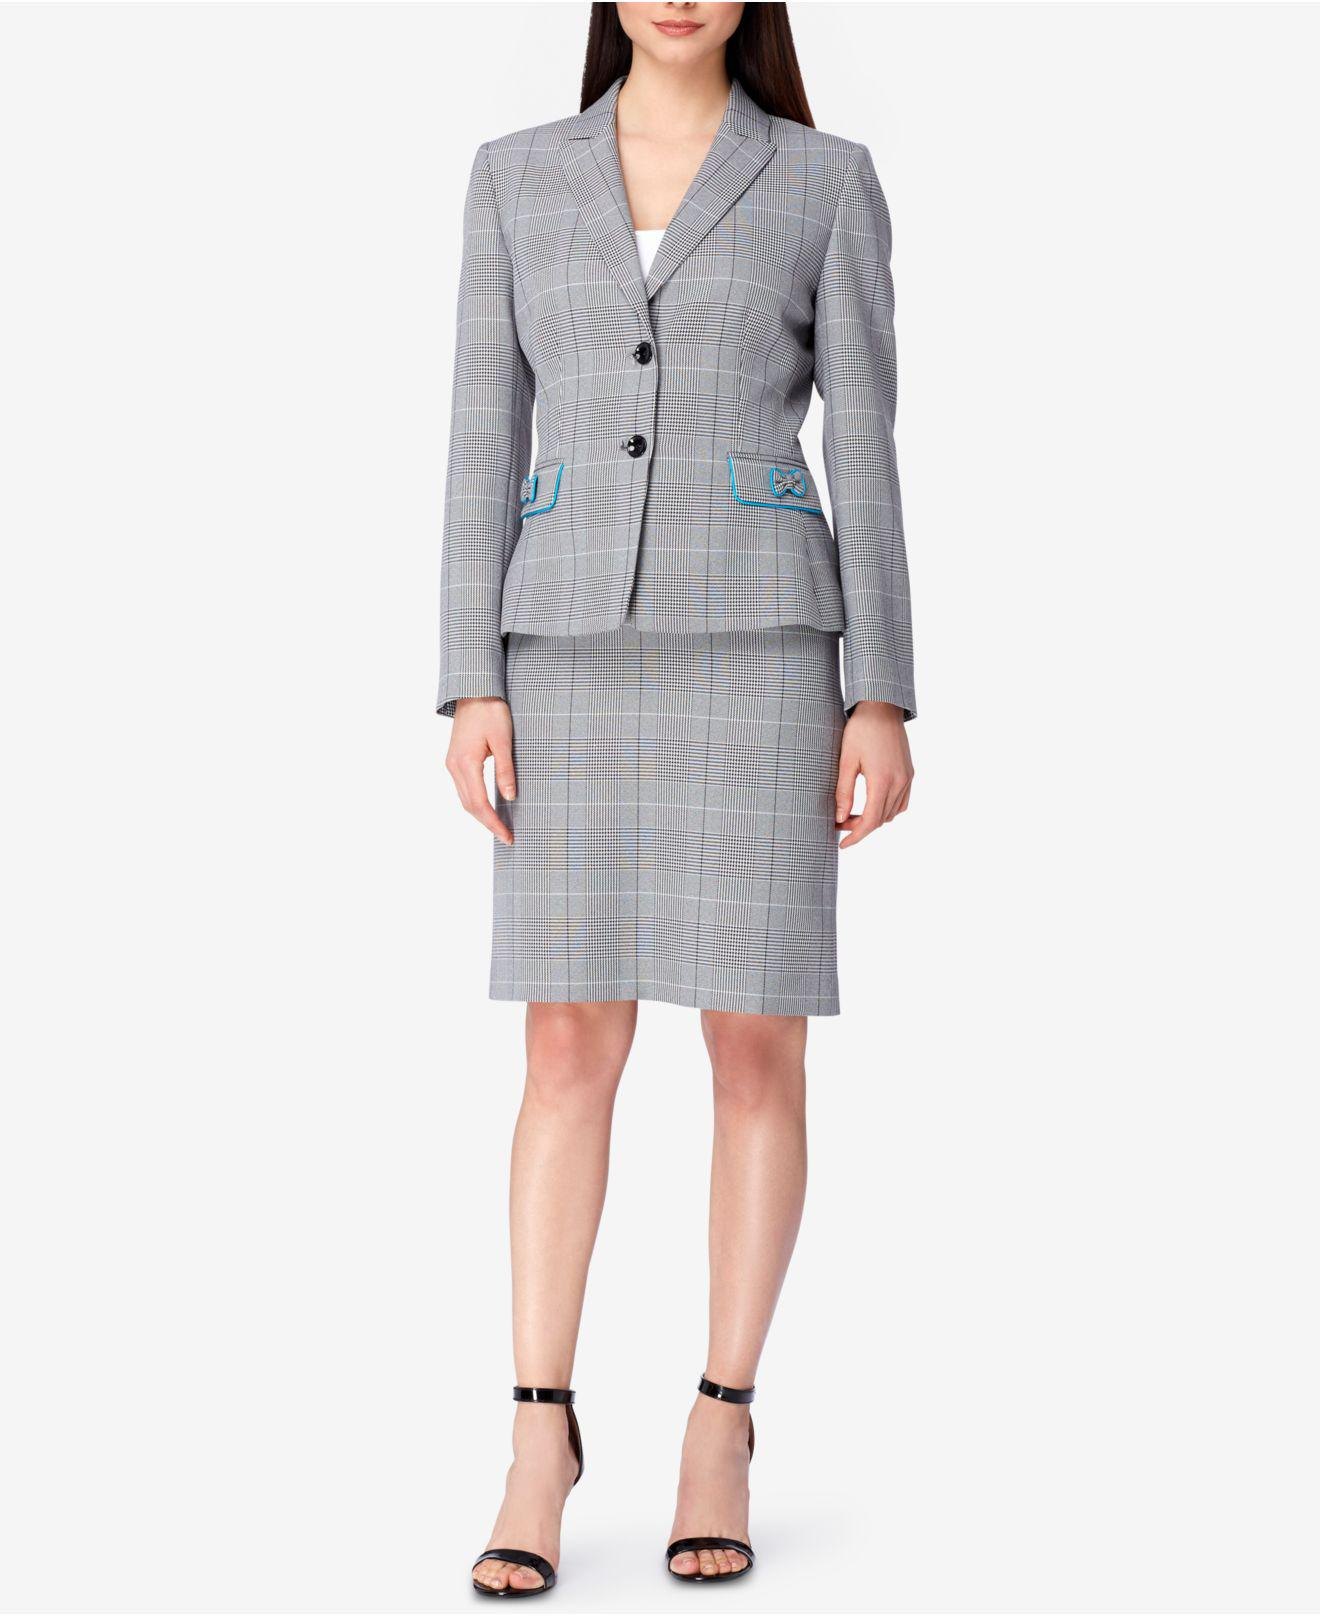 Tahari Petite Bow Trim Skirt Suit In Gray Save 21 Lyst